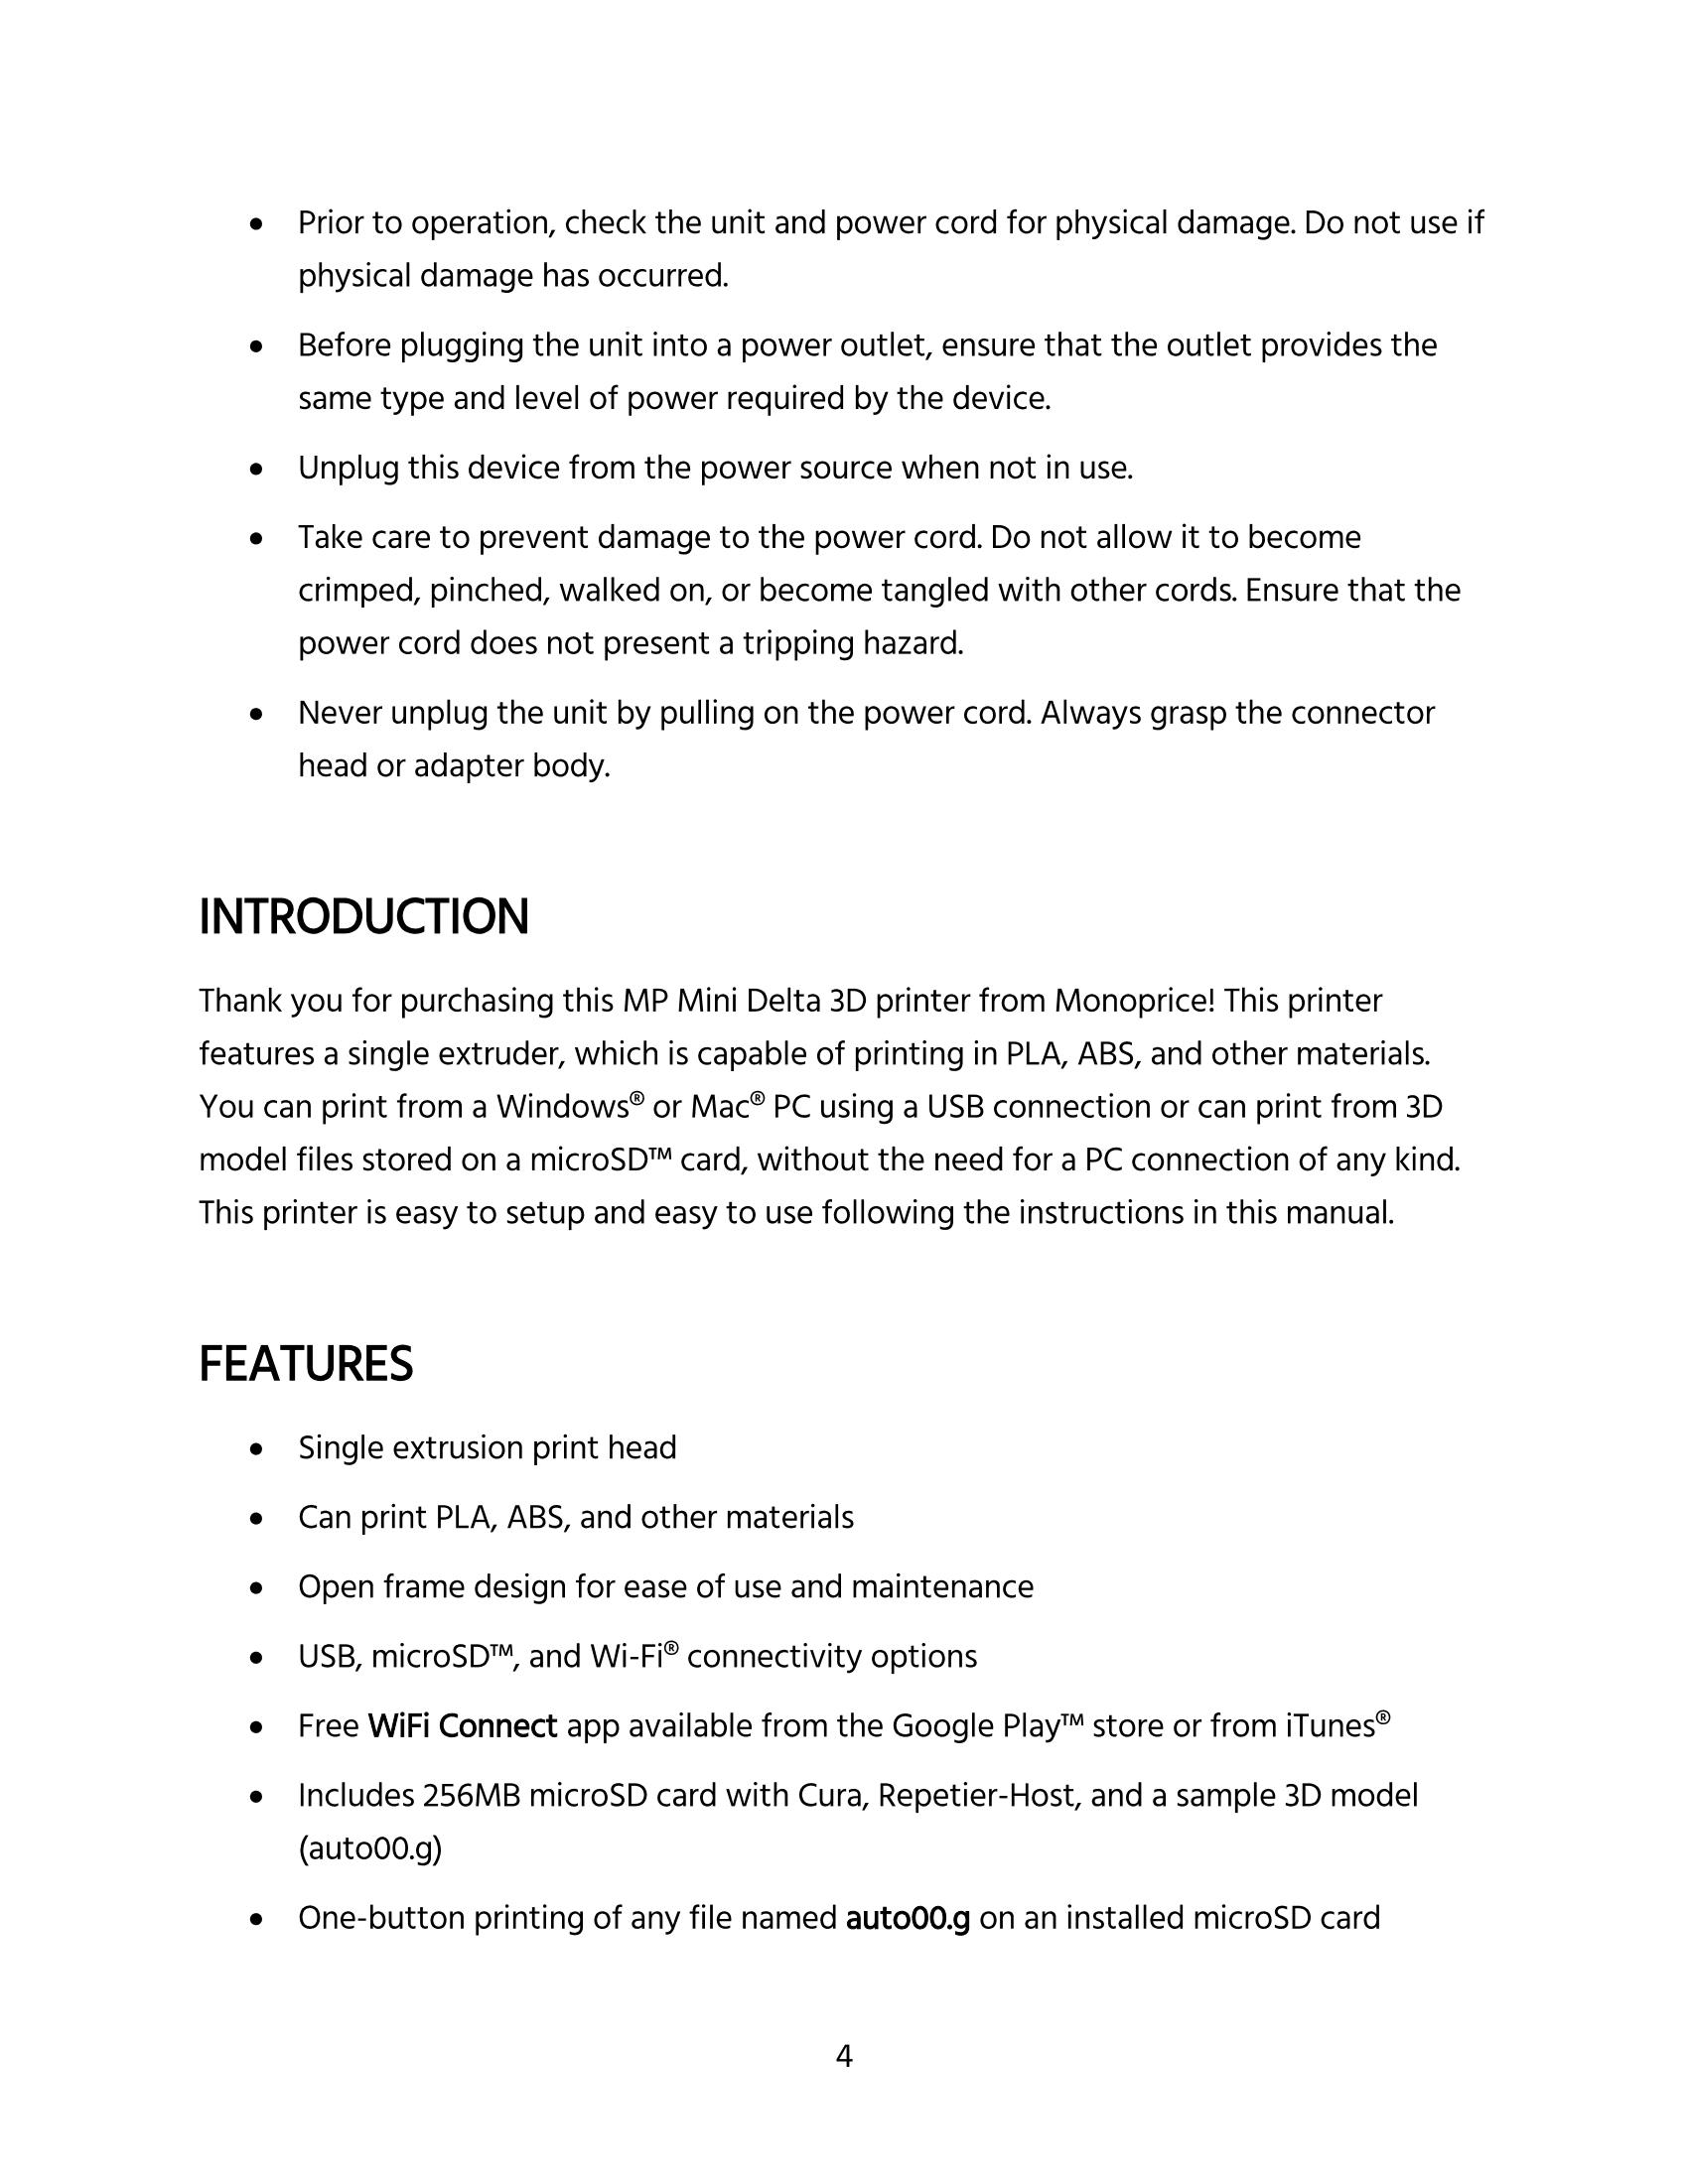 MP Mini Delta User's Manual - Page 4